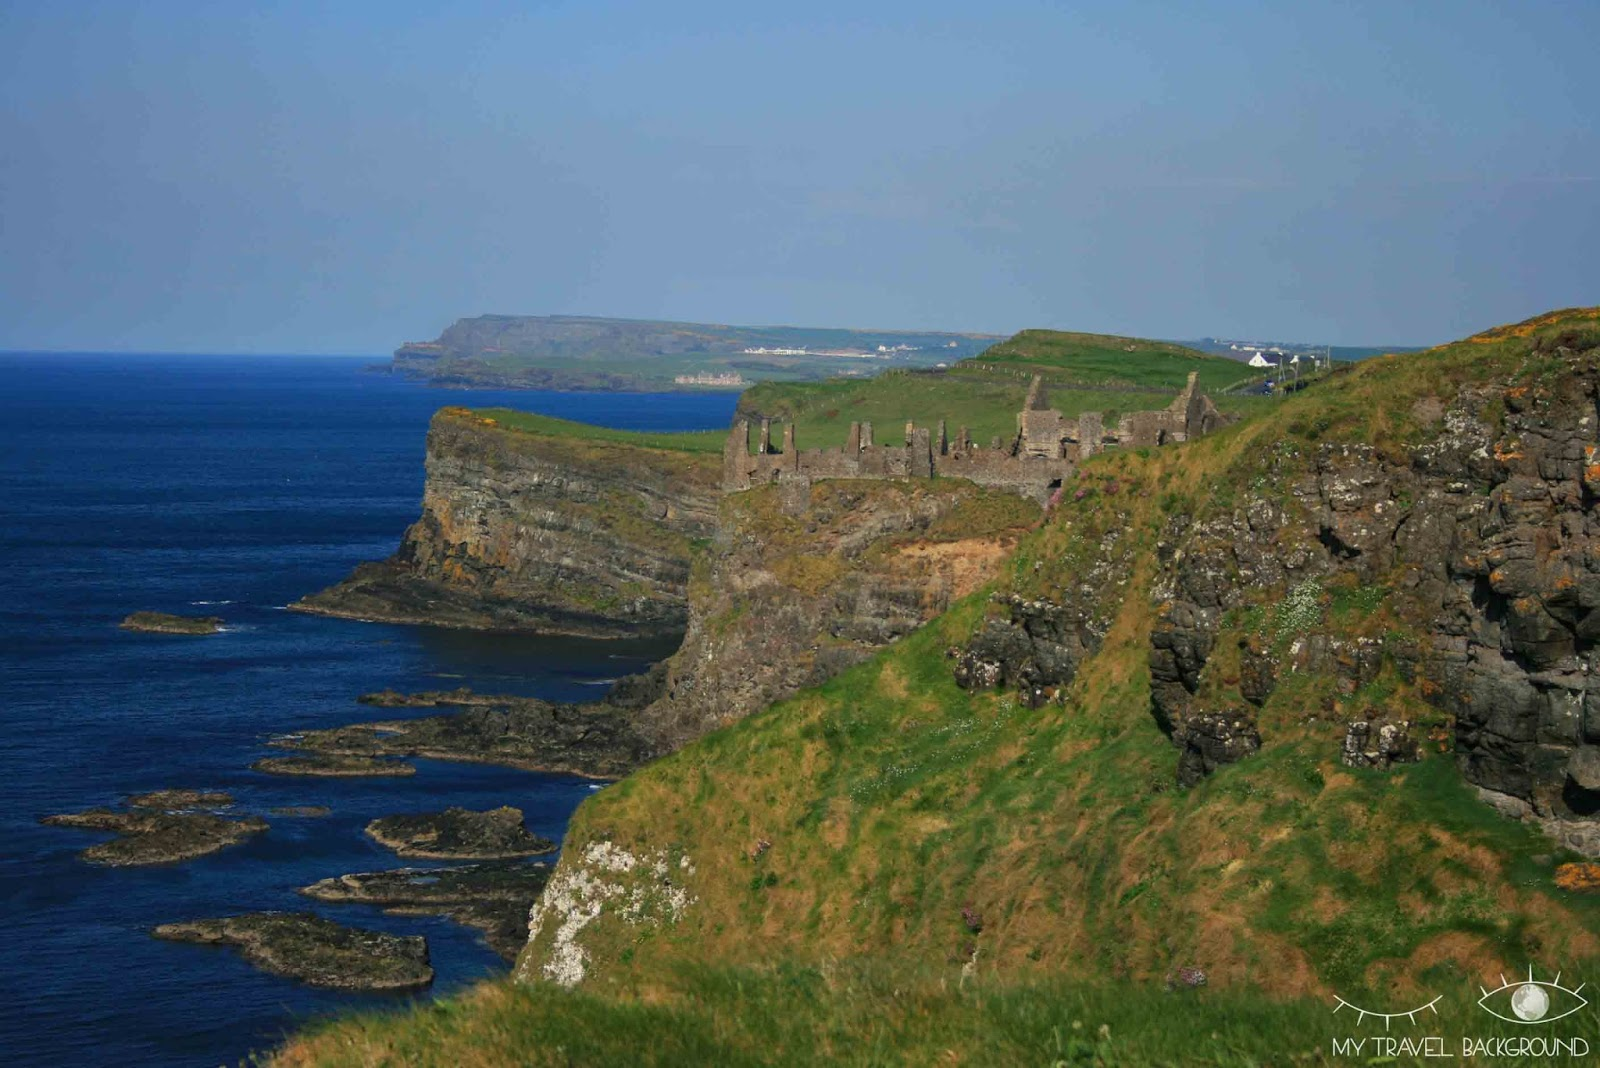 My Travel Background : Along the wild atlantic Way, Irlande du Nord - Dunluce Castle